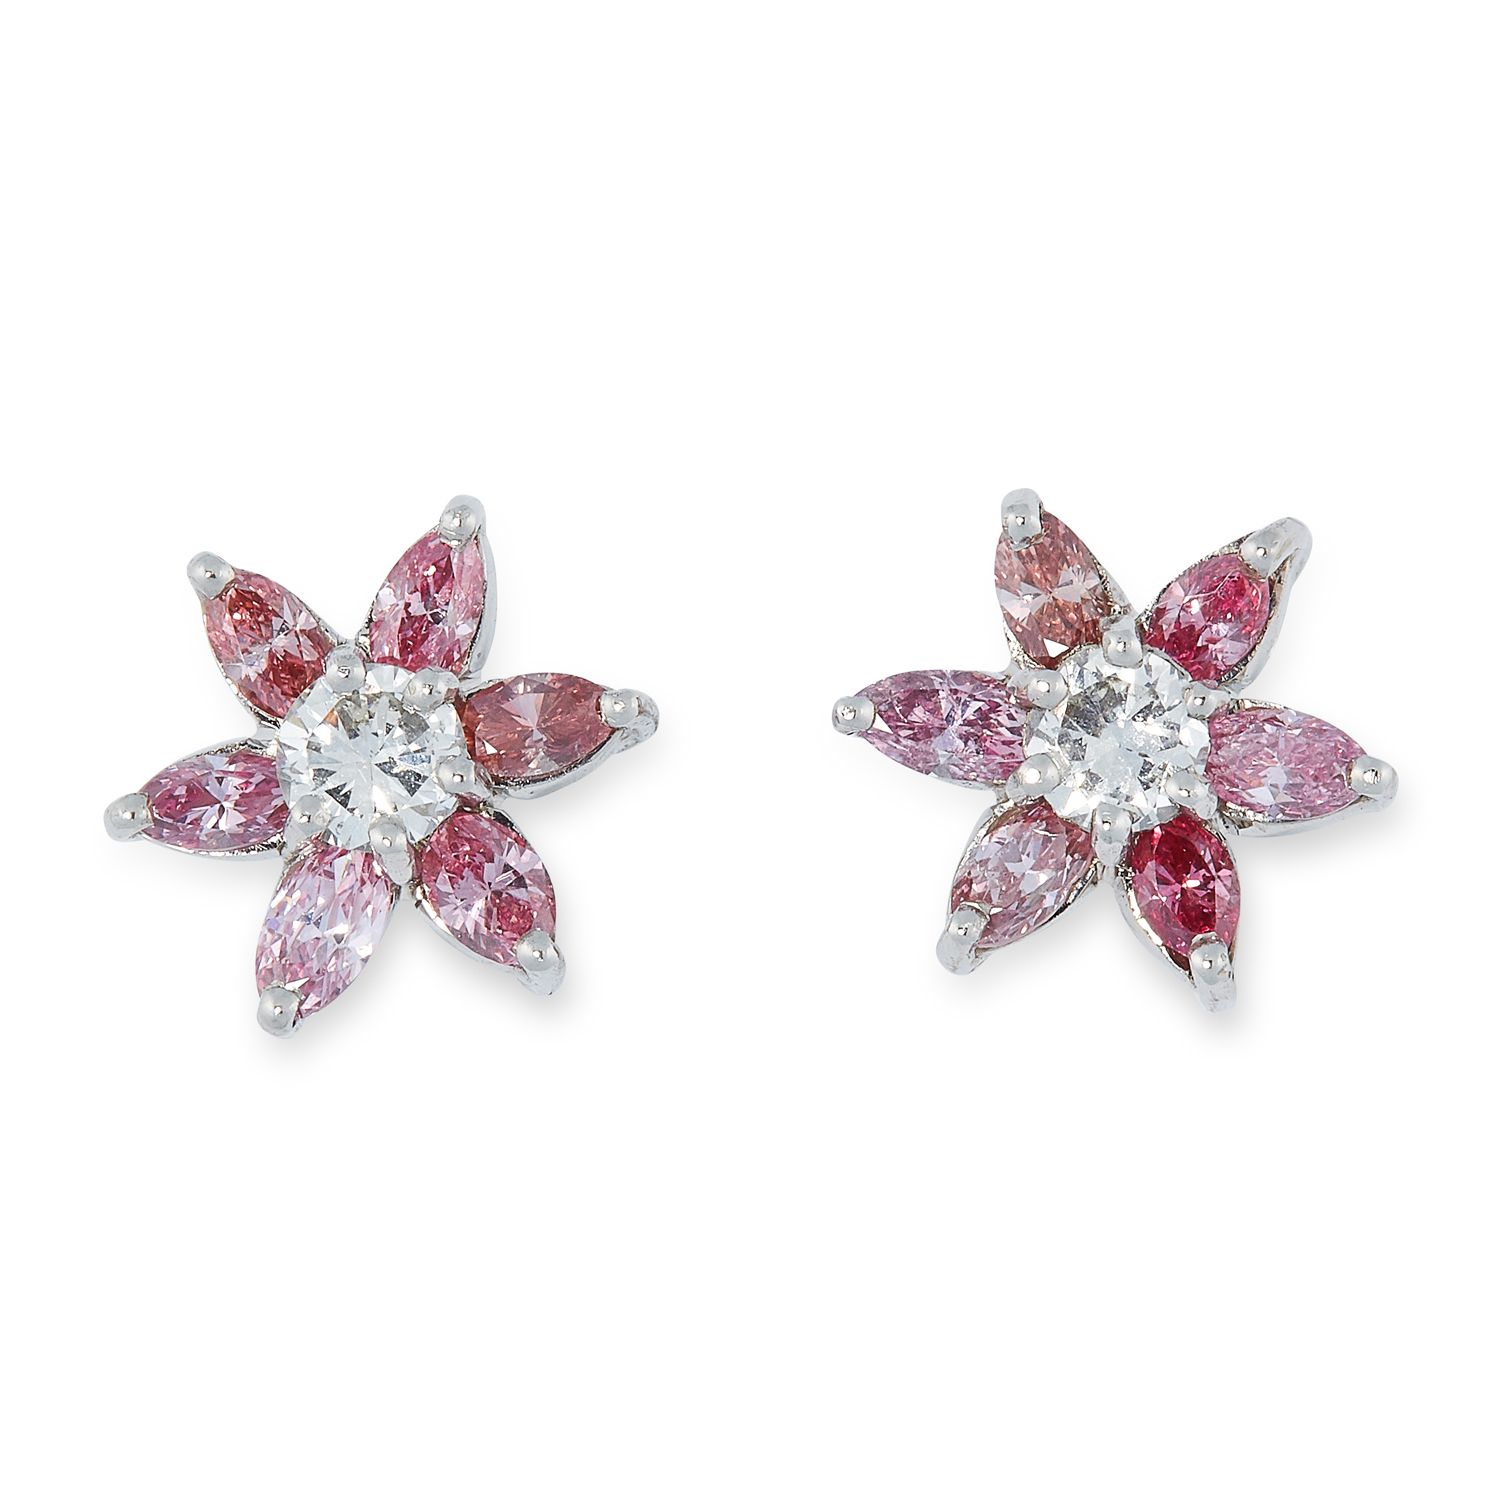 A PAIR OF PINK DIAMOND AND DIAMOND CLUSTER EARRINGS in platinum, each set with a round cut diamond